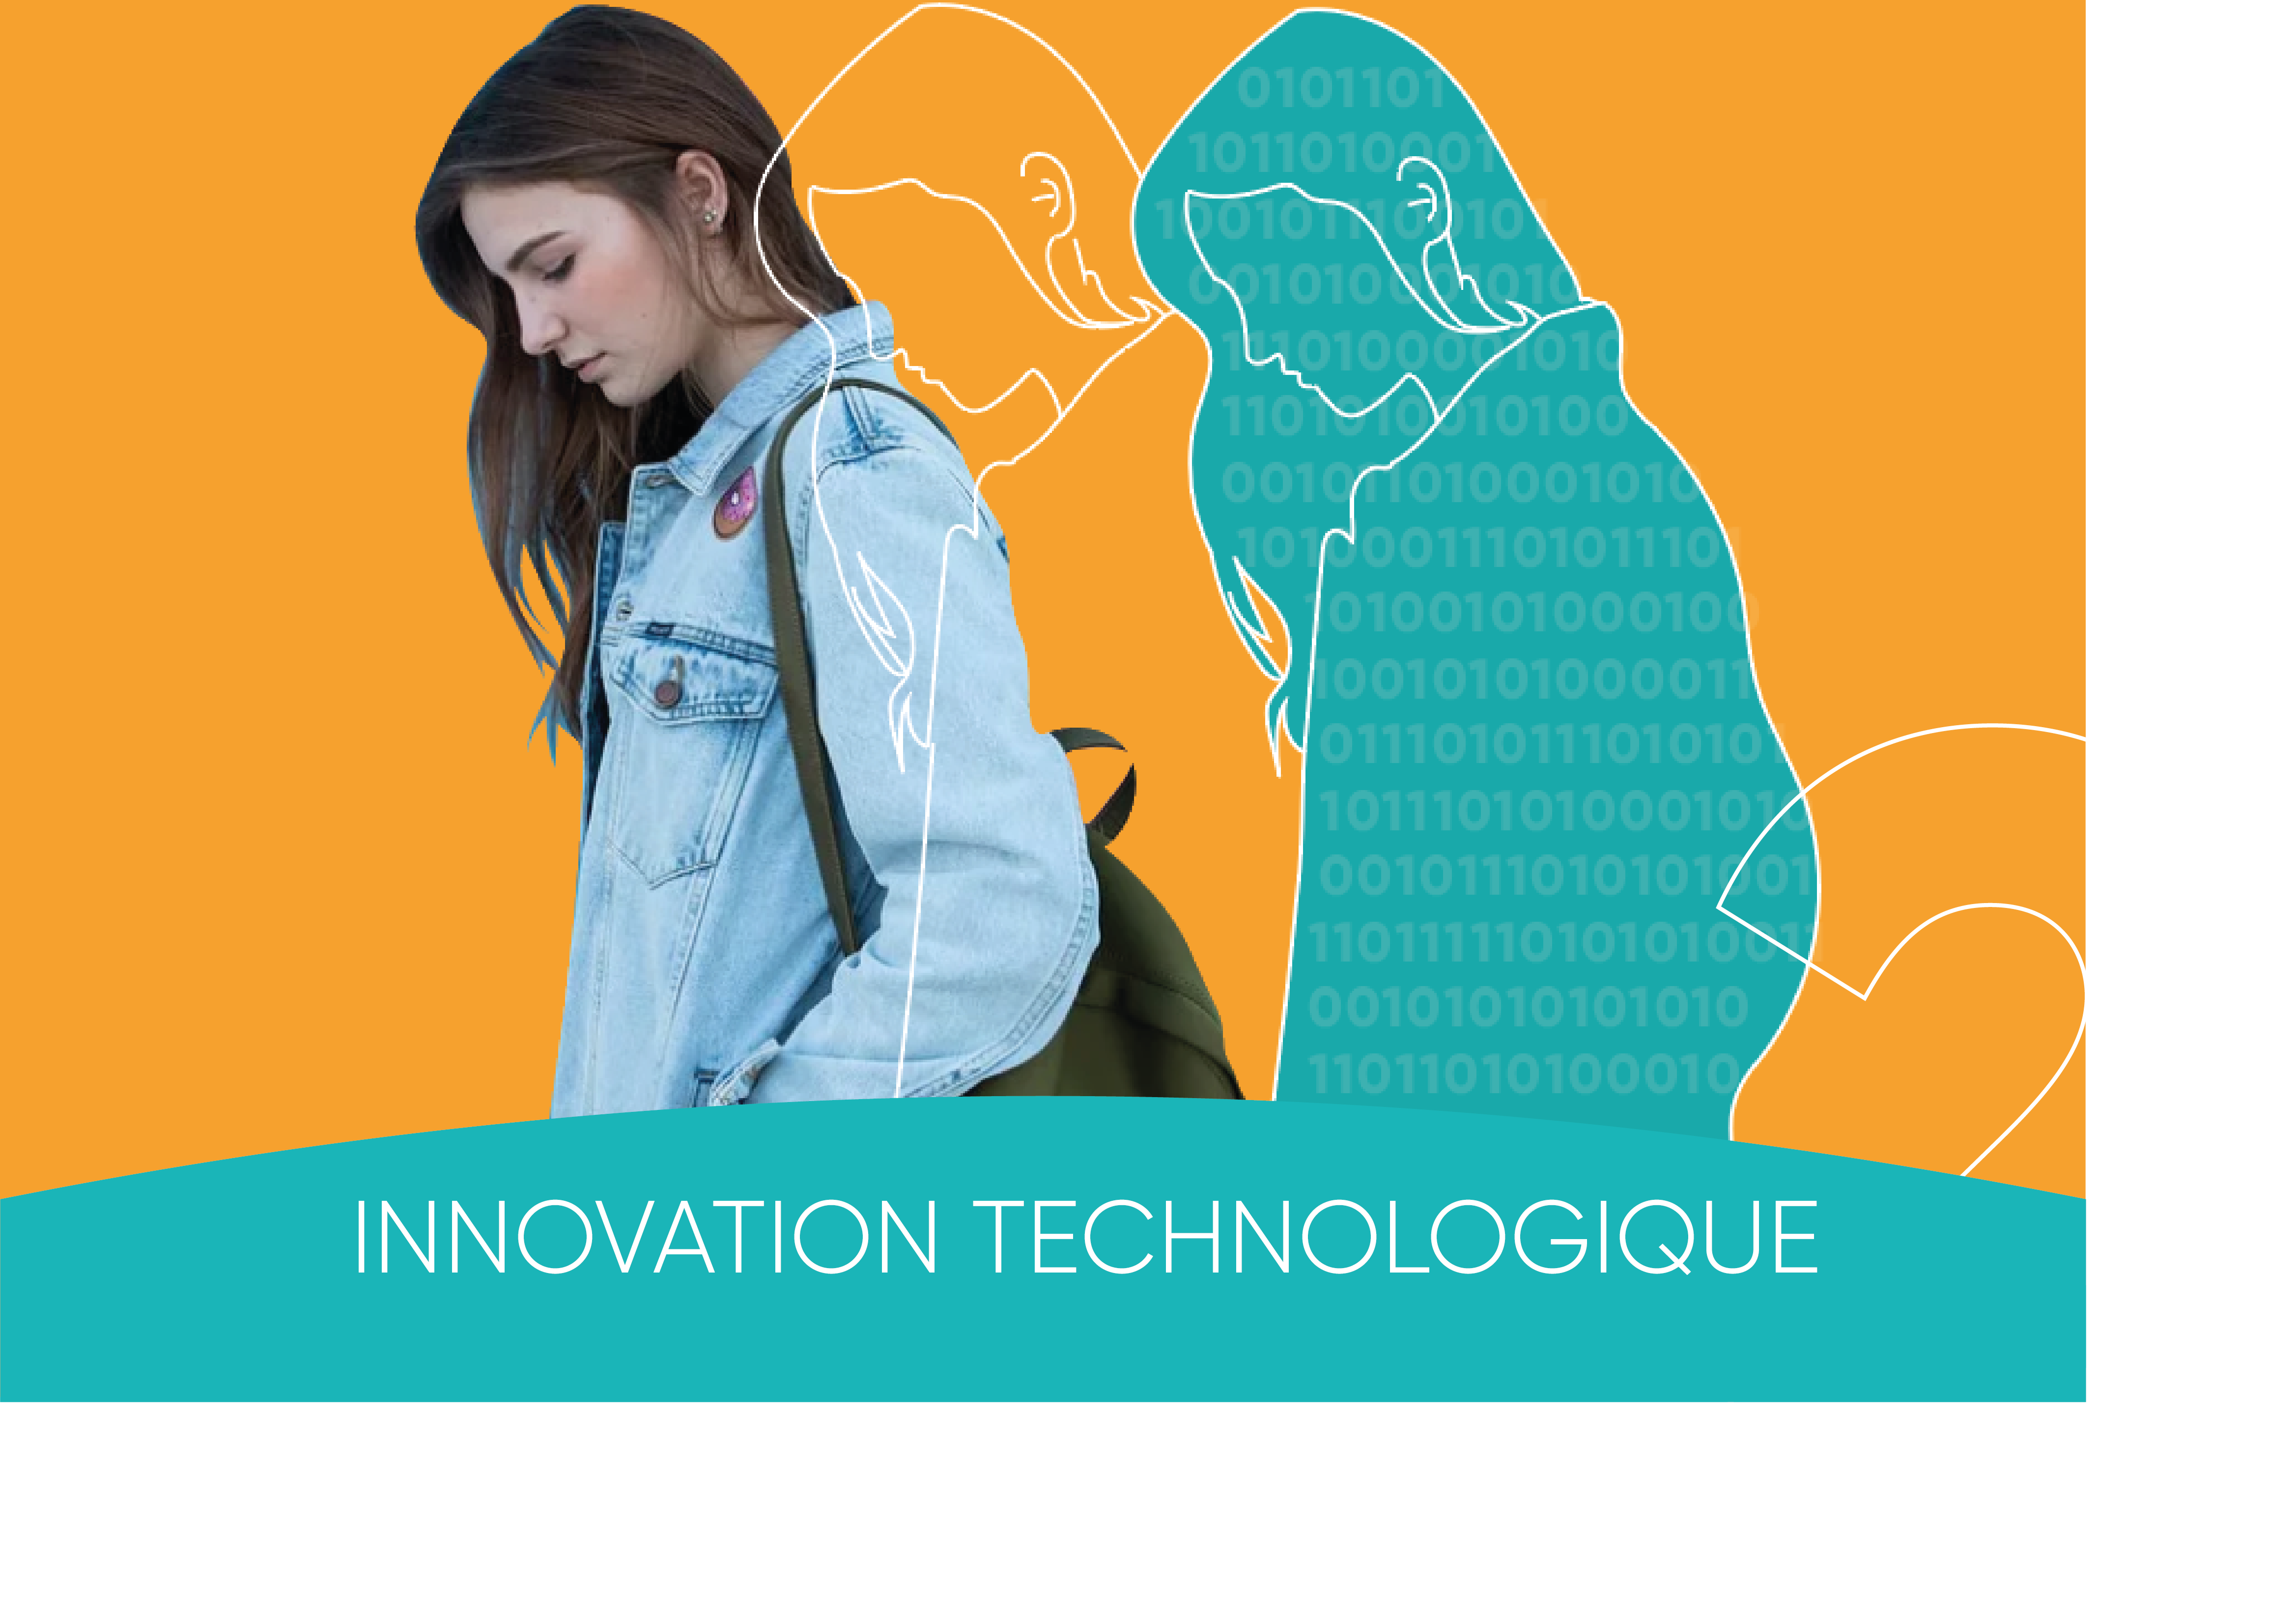 InnovationTechnologique-05